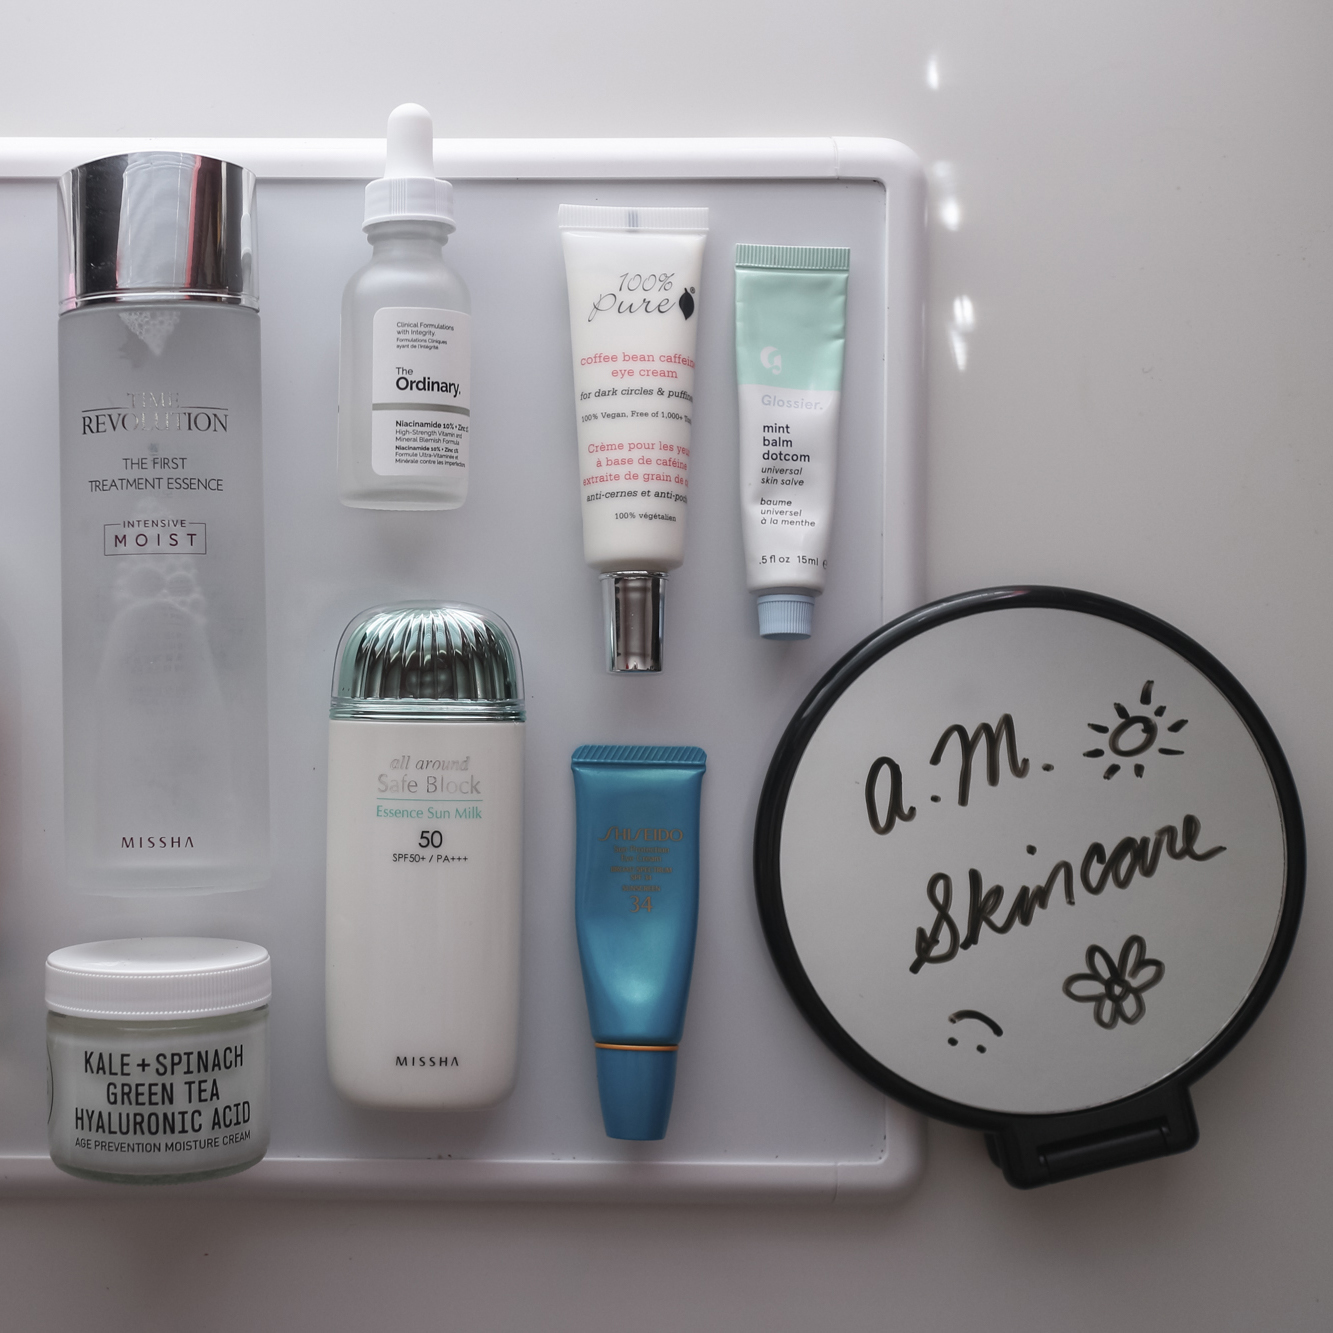 Morning: A.M. Skin Care Routine